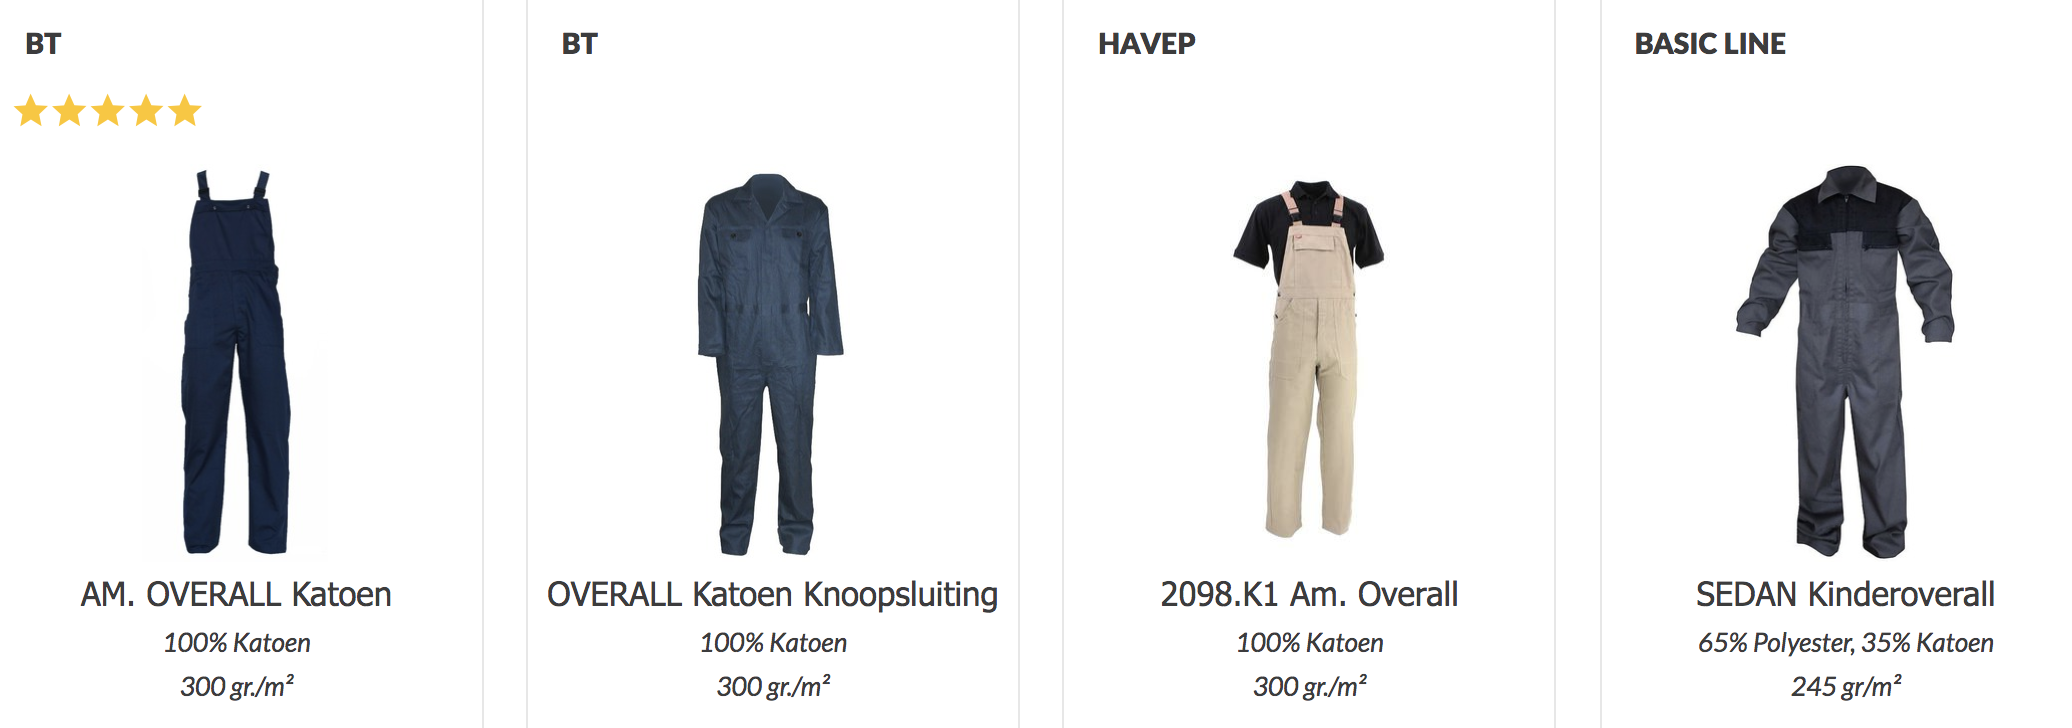 Havep overall